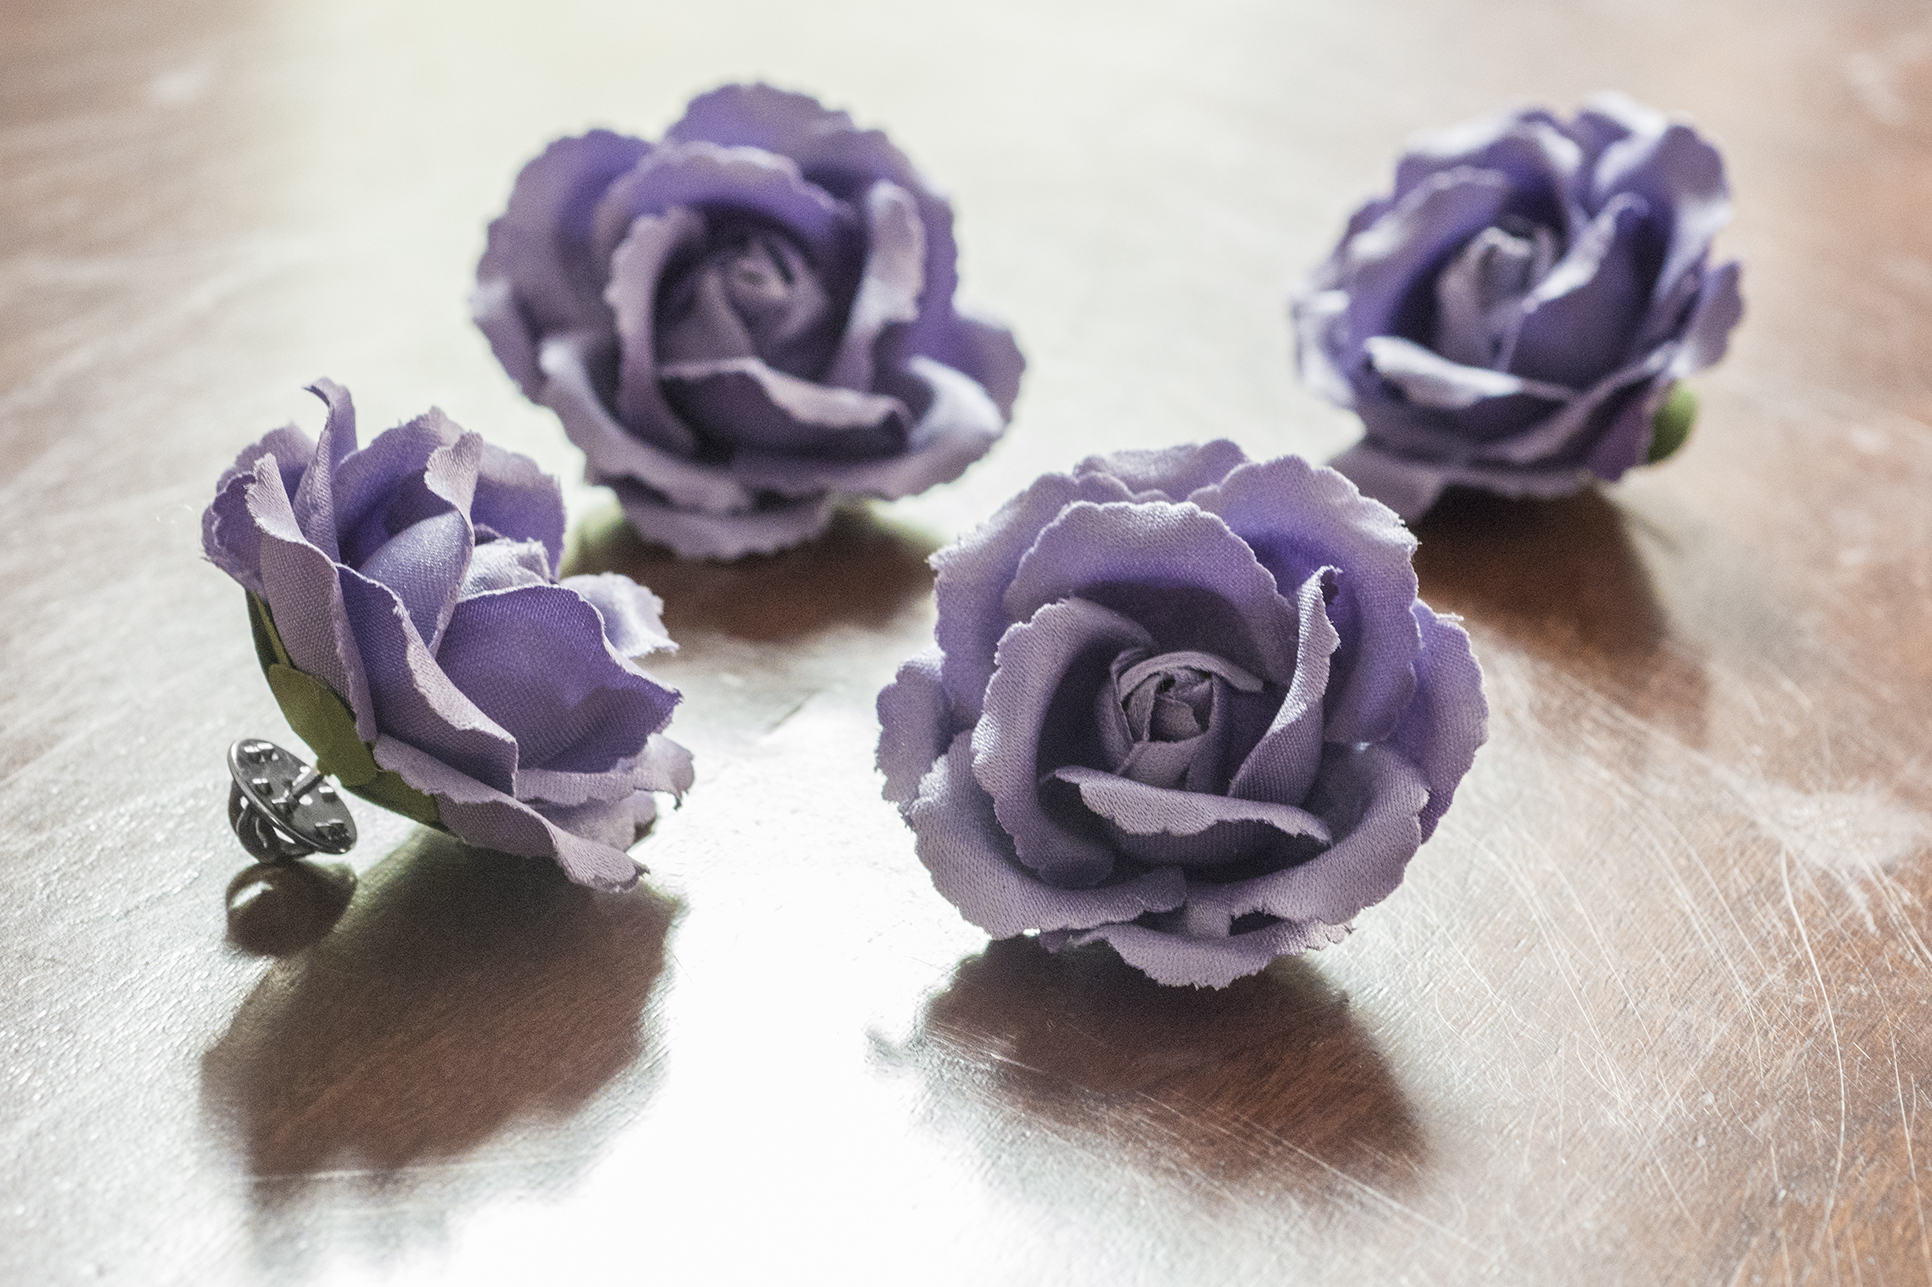 Custom lavender silk Fleurs in our cabbage rose silhouette for the groomsmen to match the bridesmaids